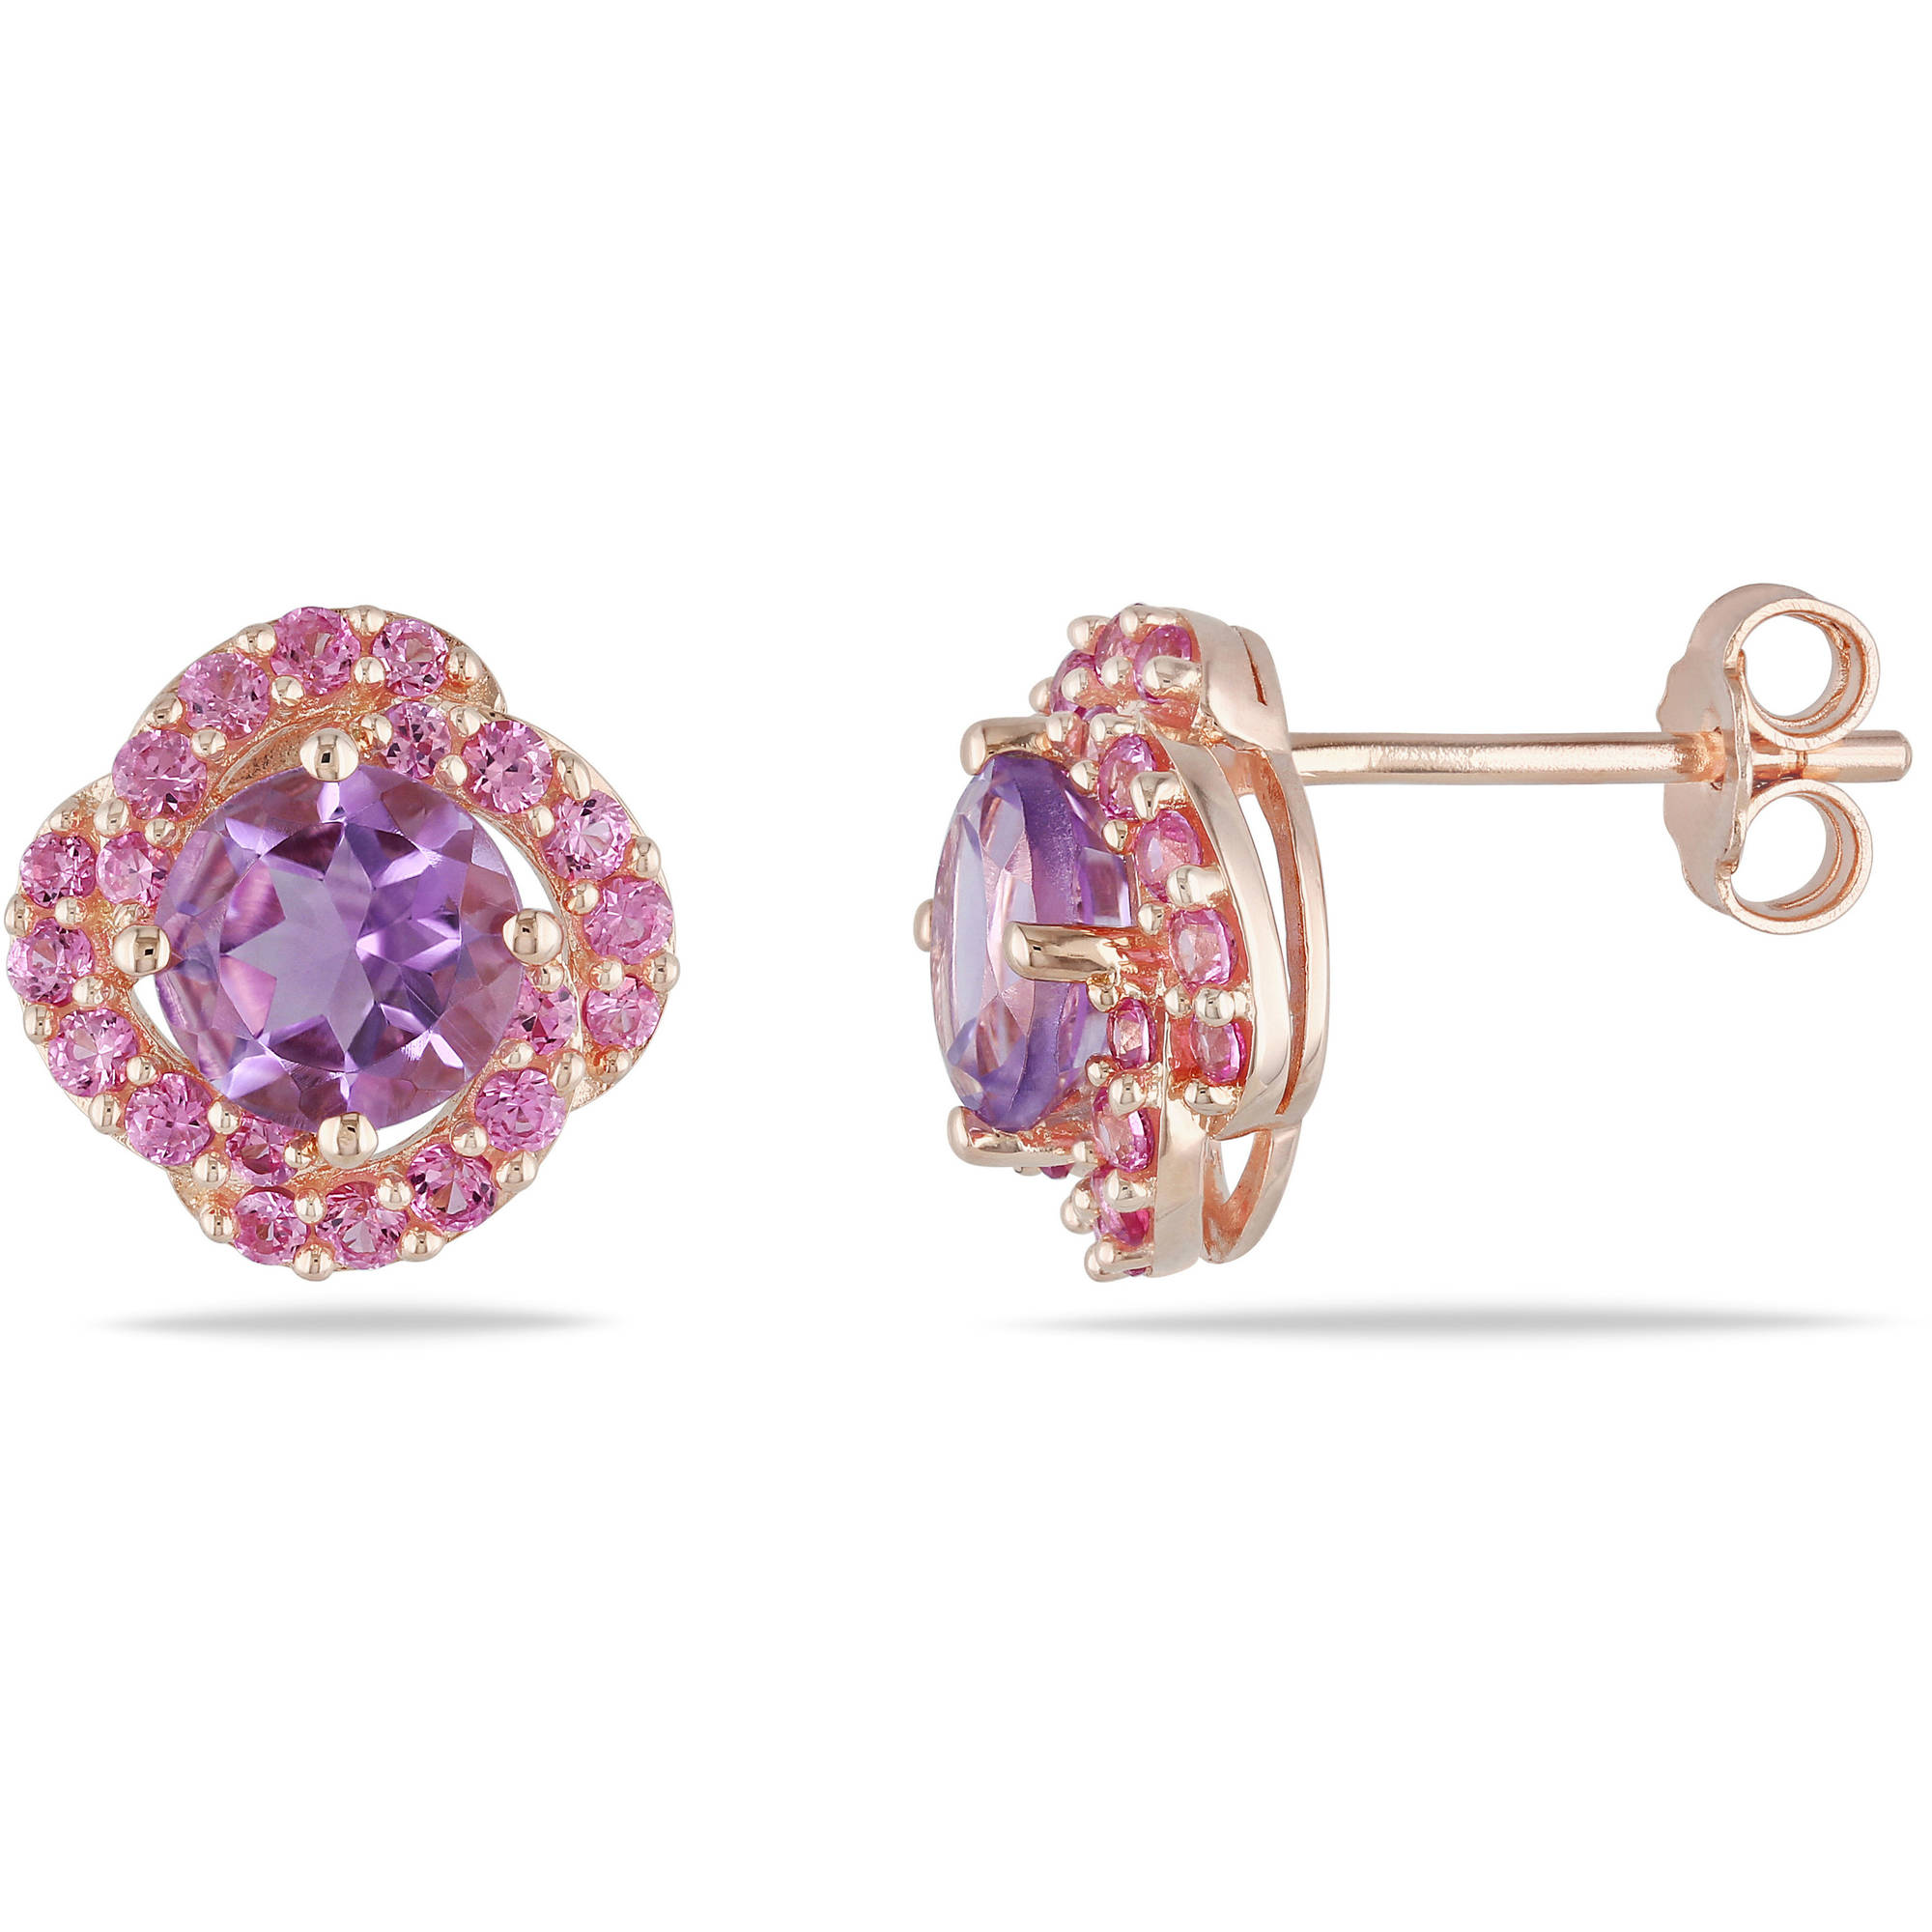 1-7 8 Carat T.G.W. Amethyst and Created Pink Sapphire Pink Rhodium-Plated Sterling Silver Swirl Earrings by Delmar Manufacturing LLC